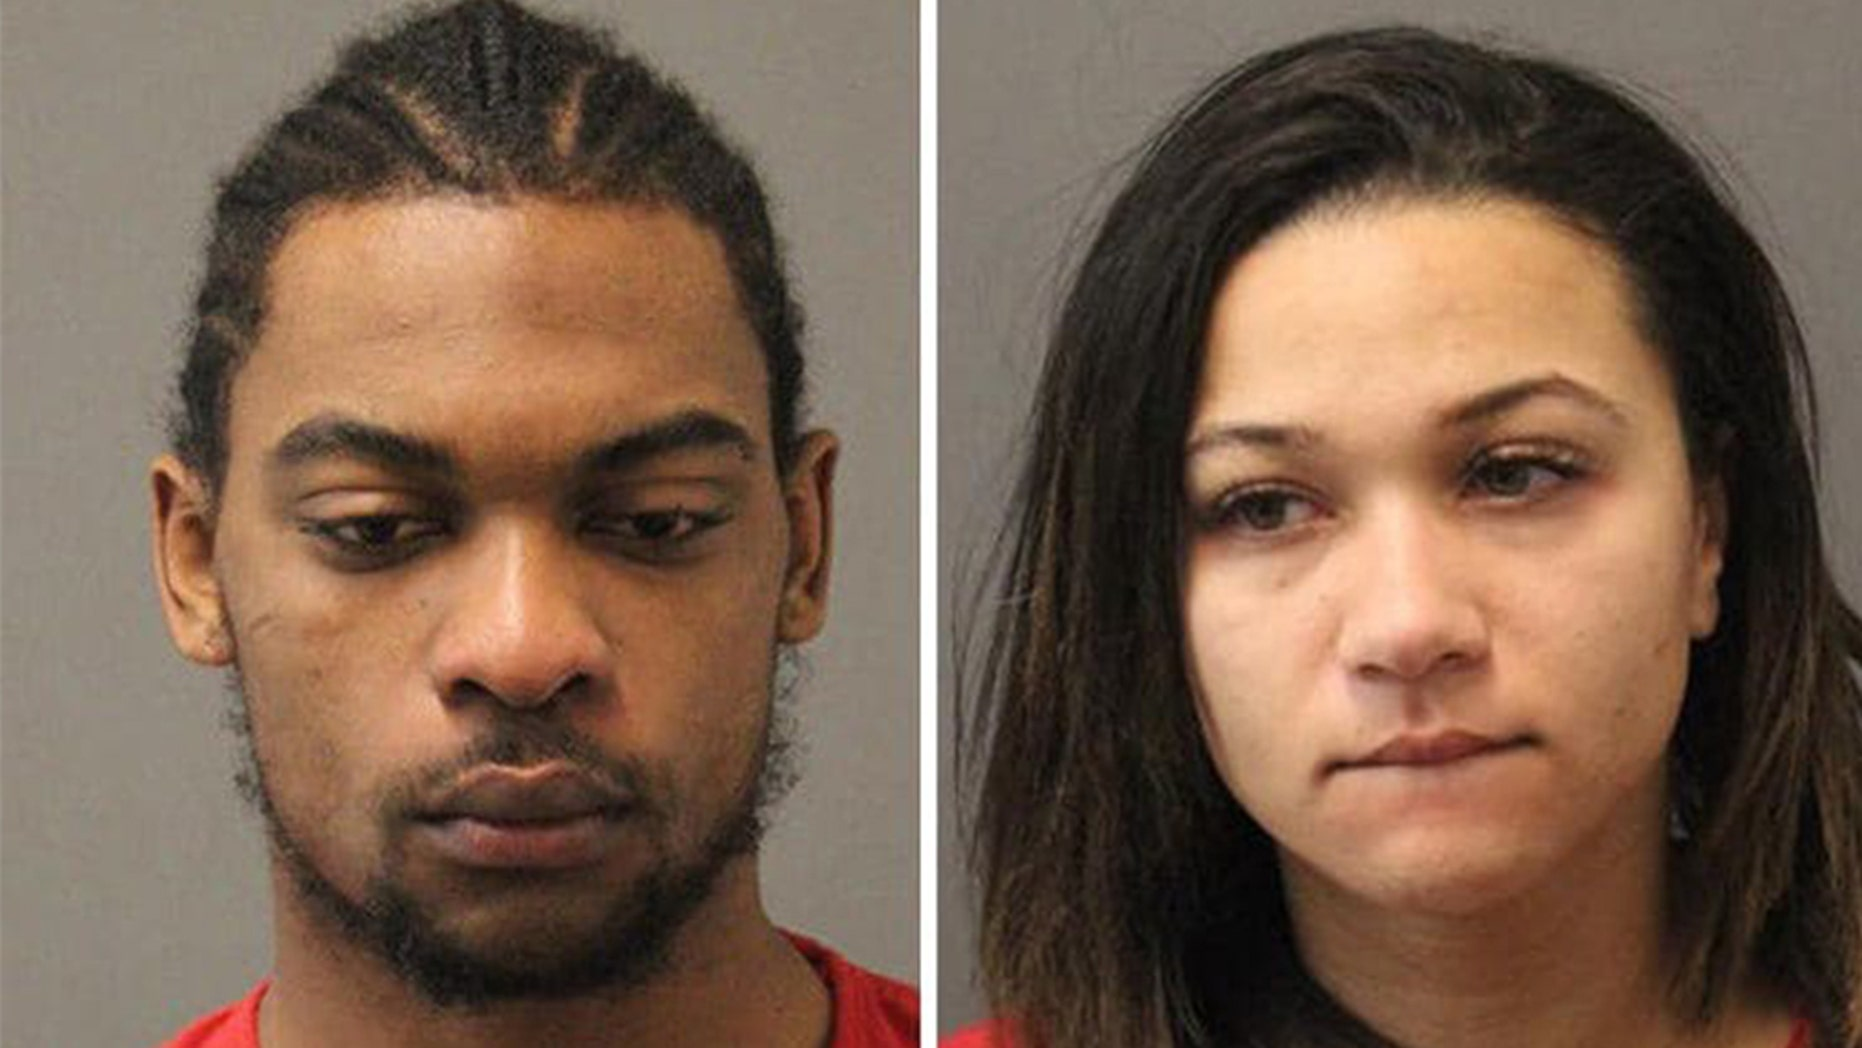 Washington Redskins guard Montae Nicholson, 23, and Sydney Maggiore, 24, were charged with minor assault and being drunk in public.